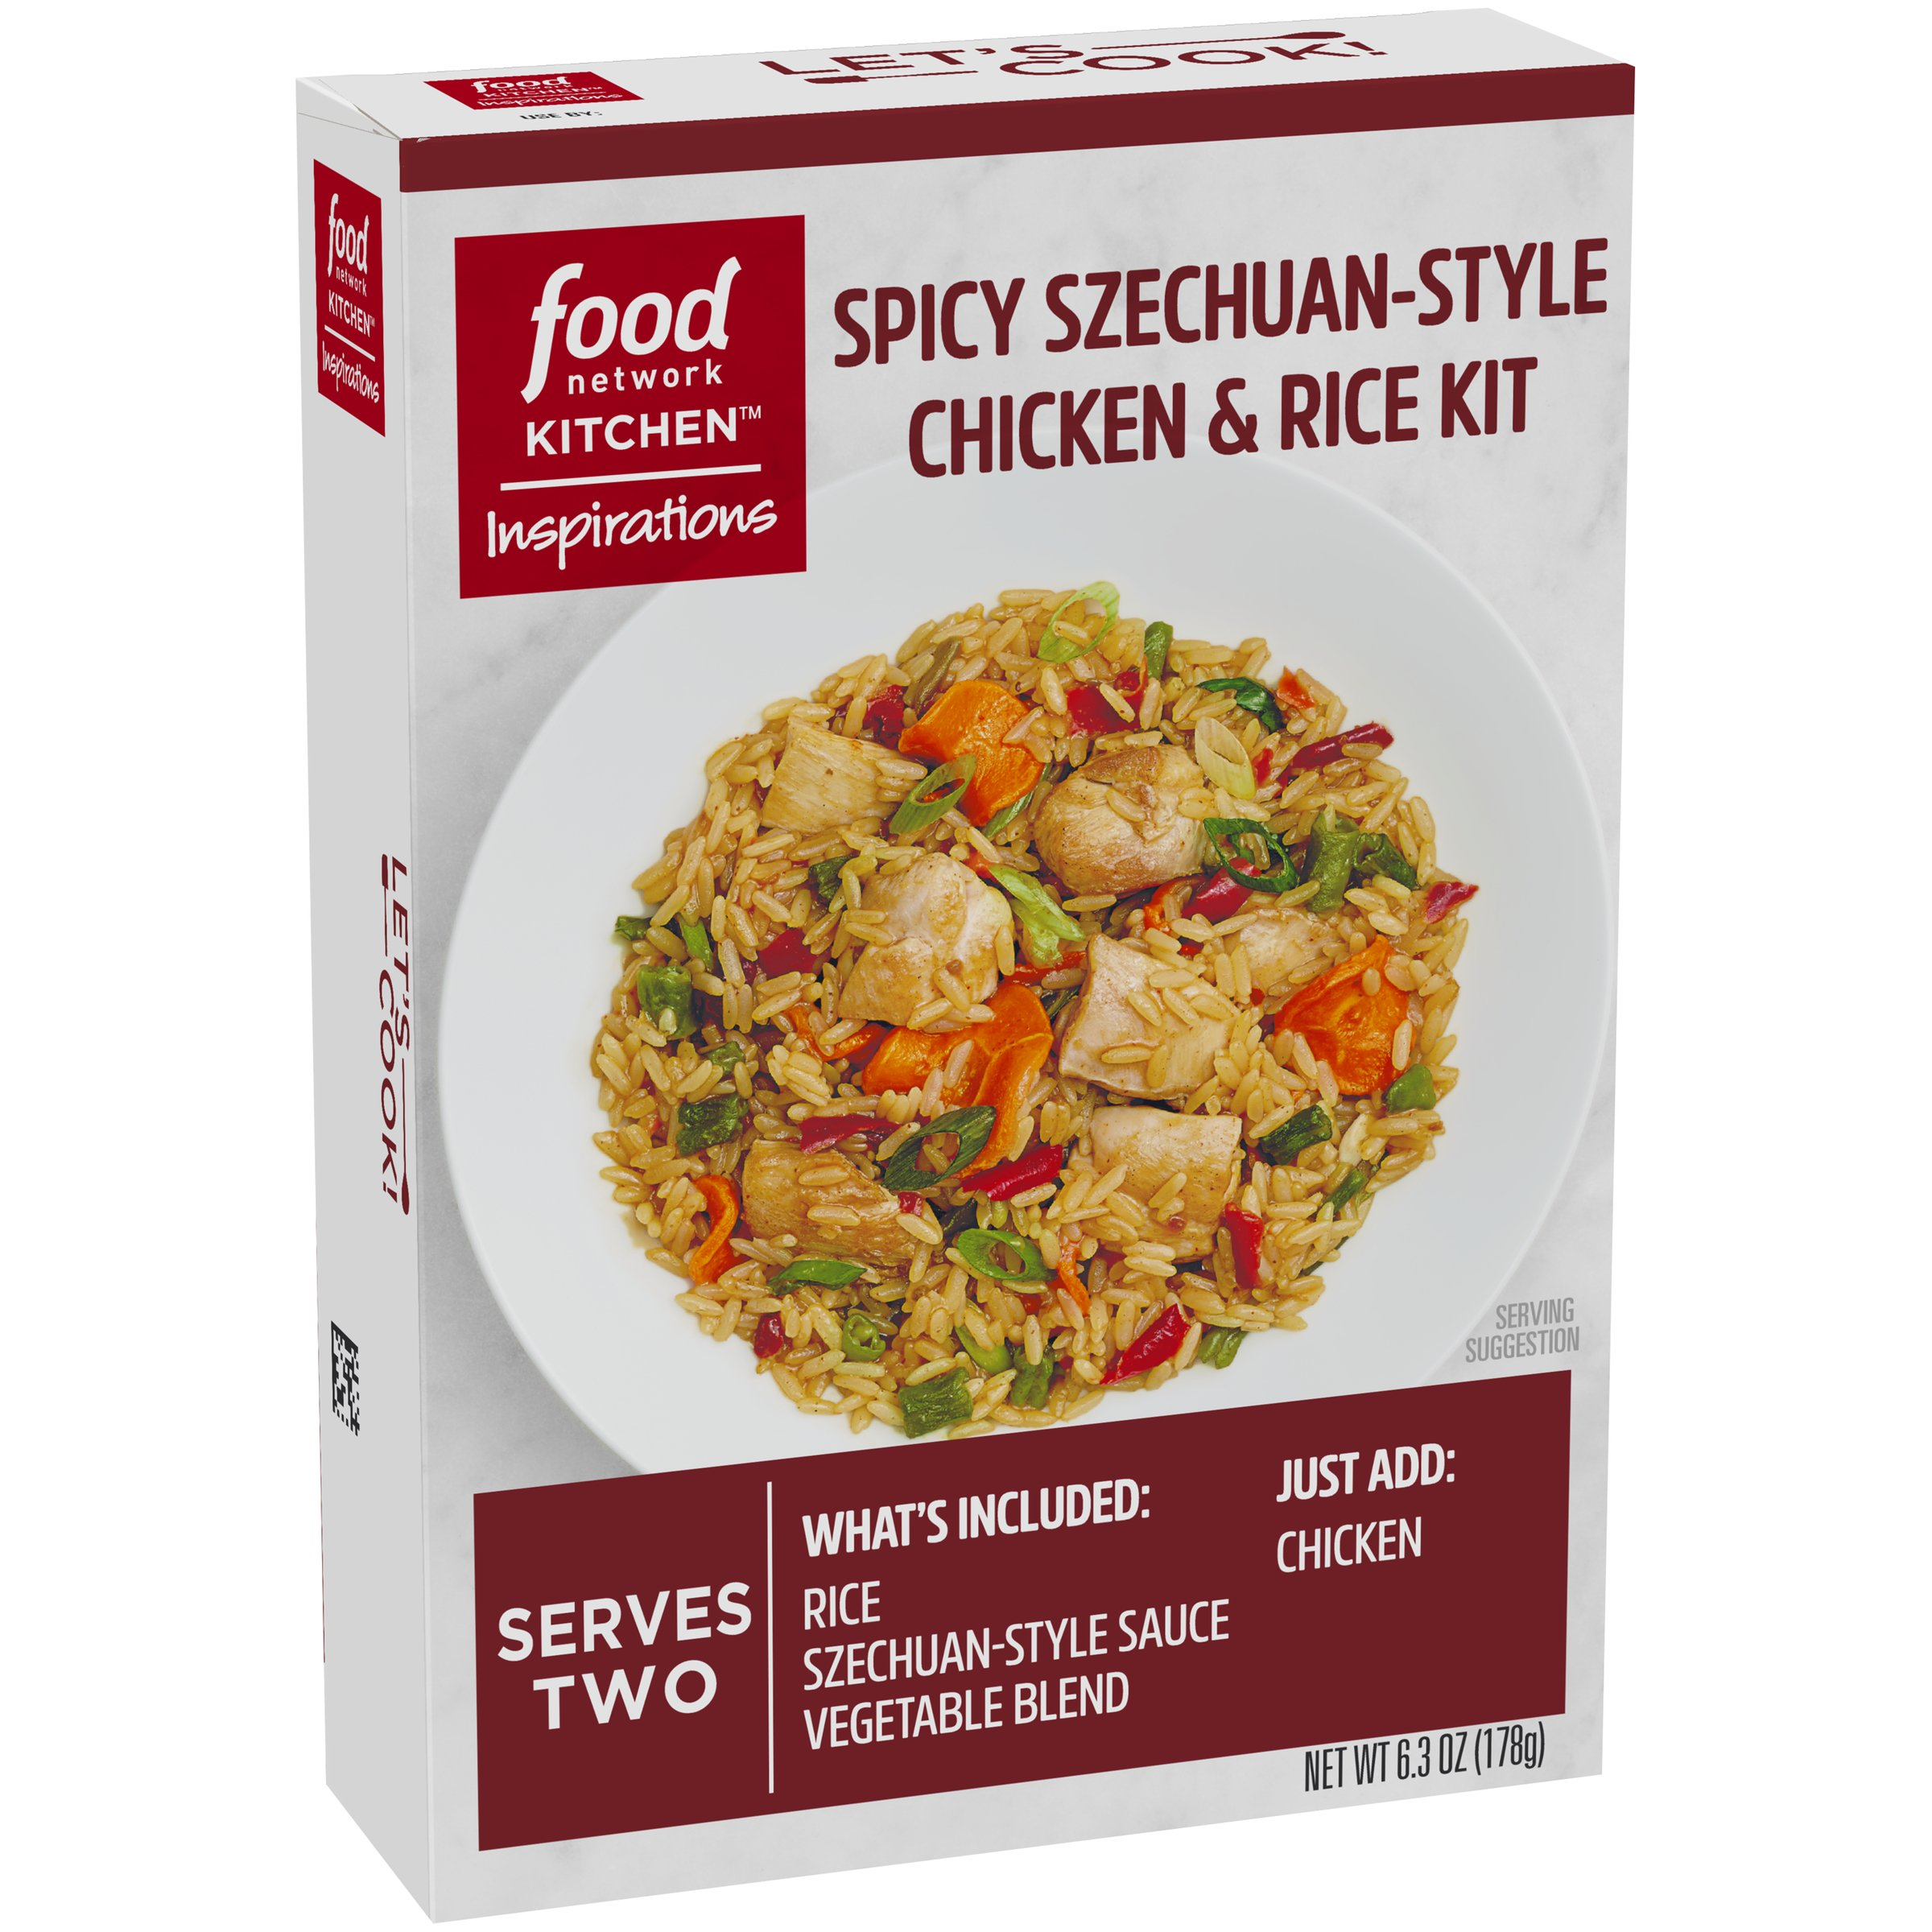 Amazon food network kitchen inspirations chicken pad thai meal food network kitchen inspirations spicy szechuan style chicken rice meal kit forumfinder Choice Image